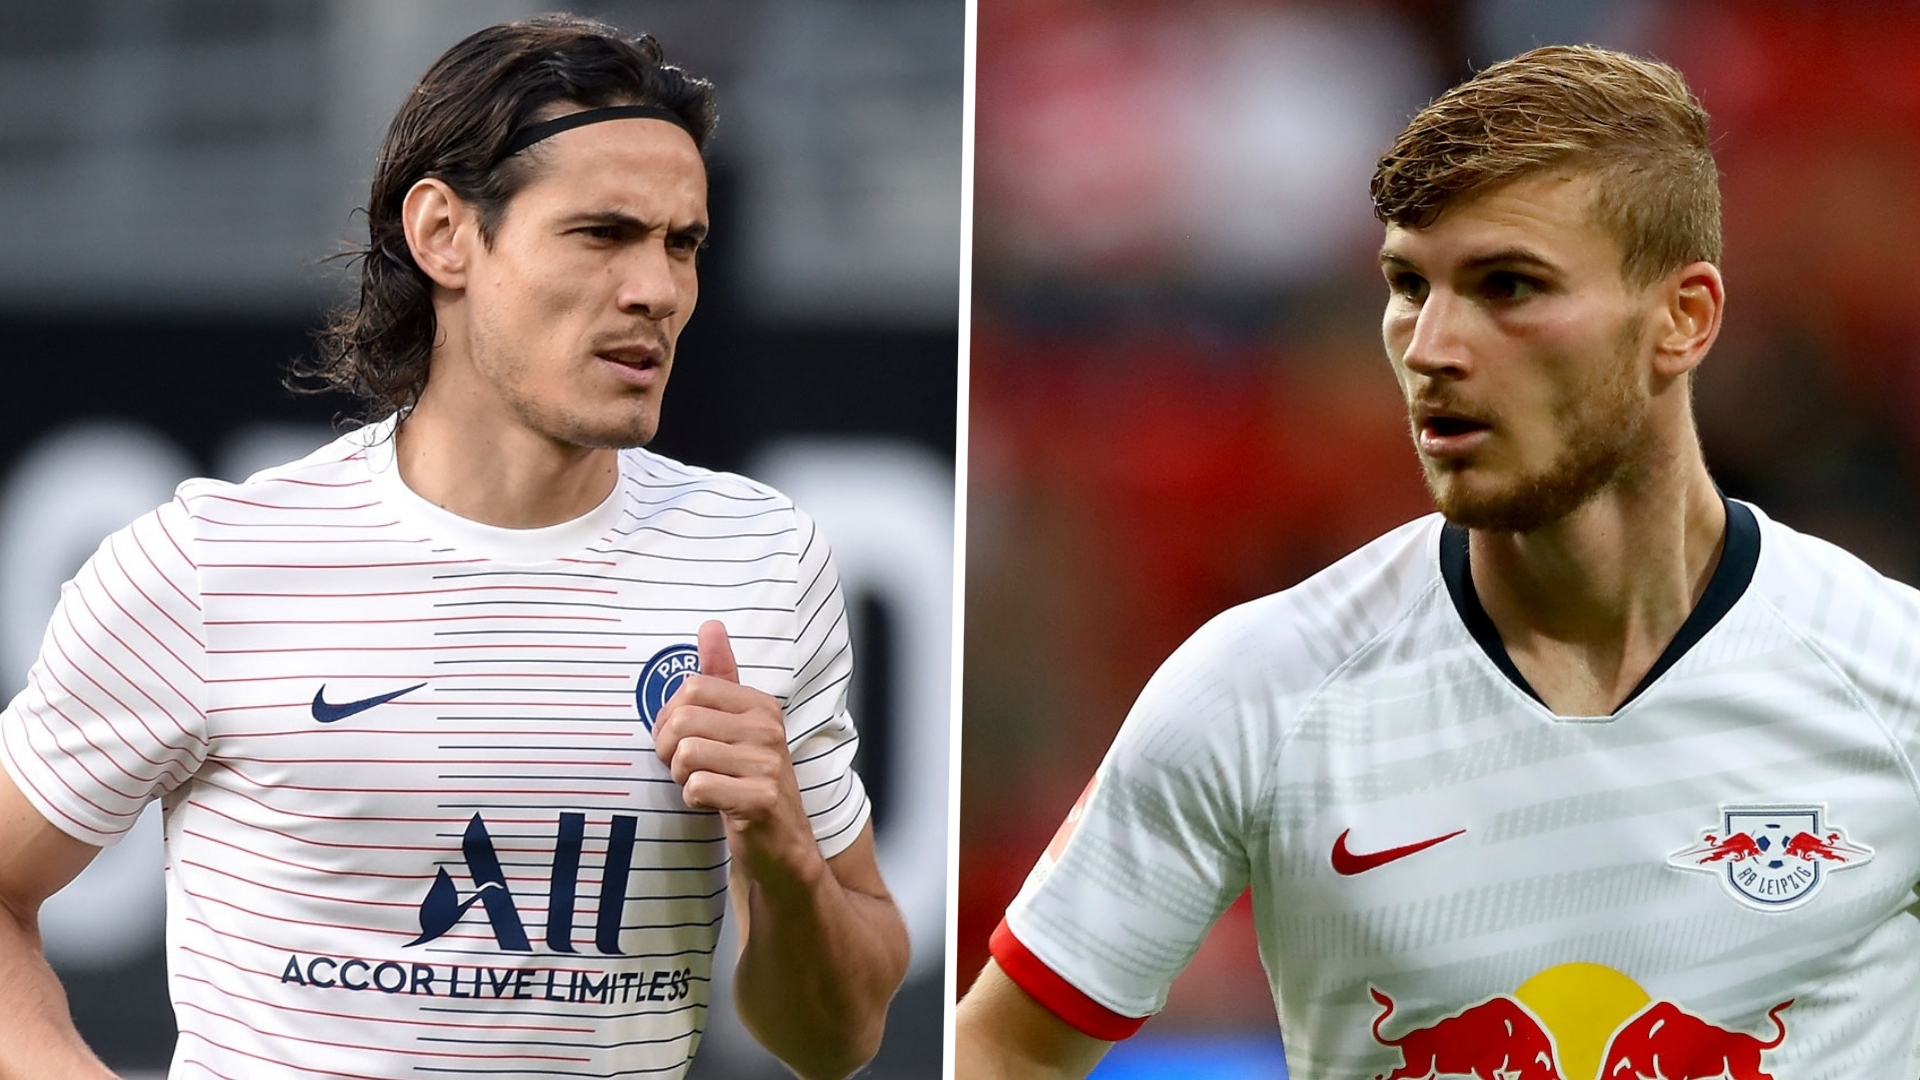 'Inter should sign Cavani and Werner' - Pirelli boss urges club to go big in transfer market